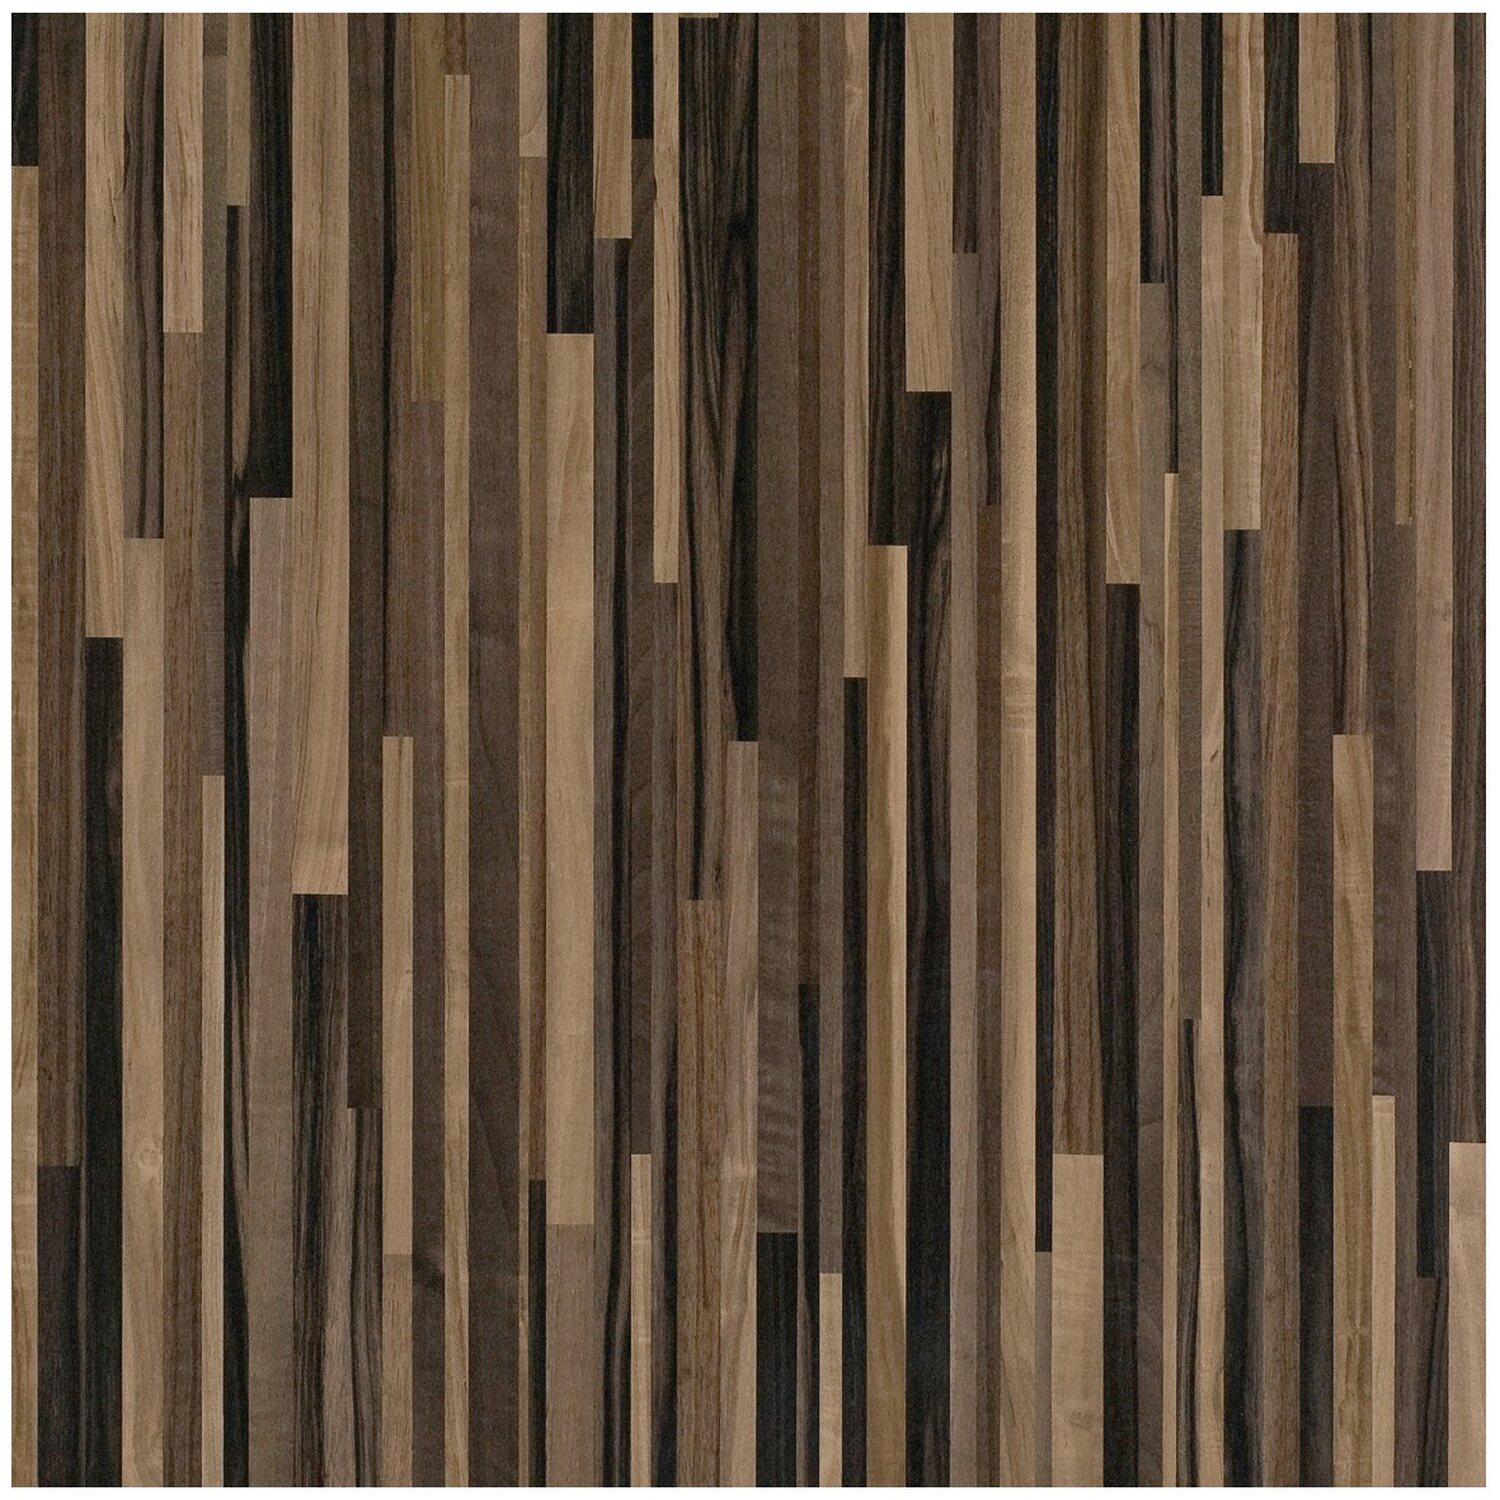 arbeitsplatte 60 cm x 3 9 cm listone butcherblock wenge nachbildung bbl739 pof kaufen bei obi. Black Bedroom Furniture Sets. Home Design Ideas